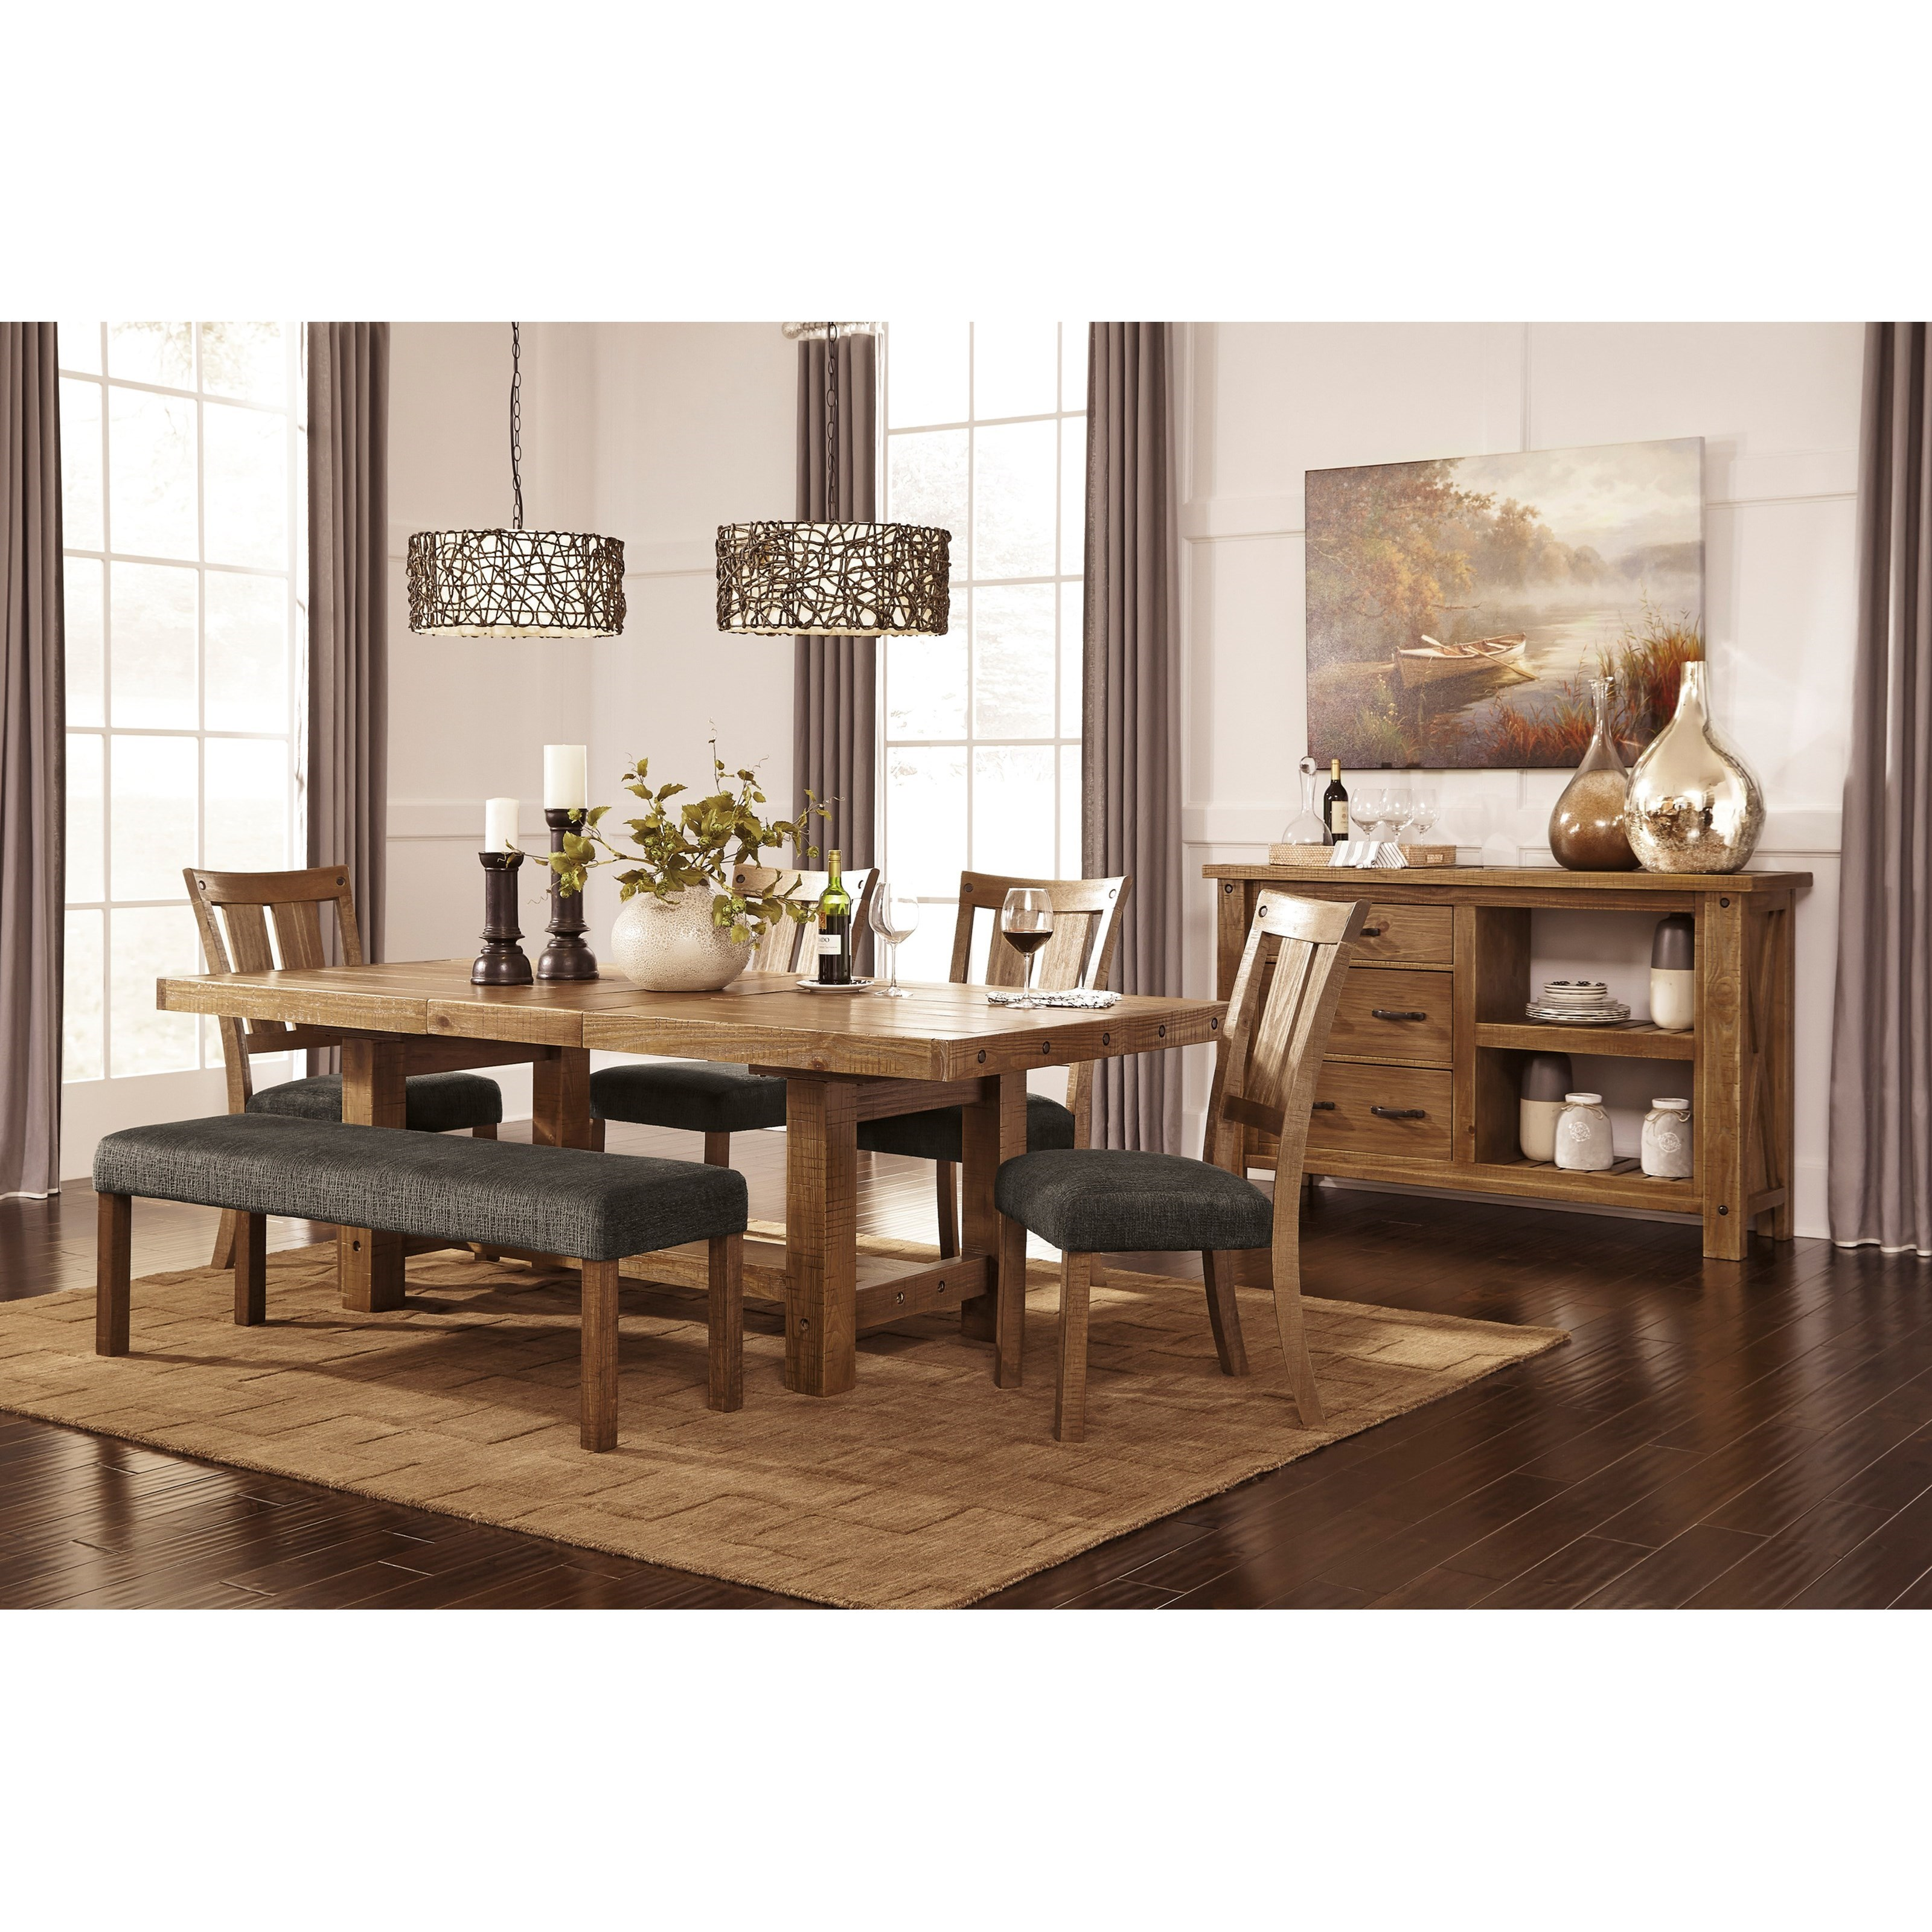 Ashley S Nest Decorating A Dining Room: Signature Design By Ashley Tamilo D714-00 Large